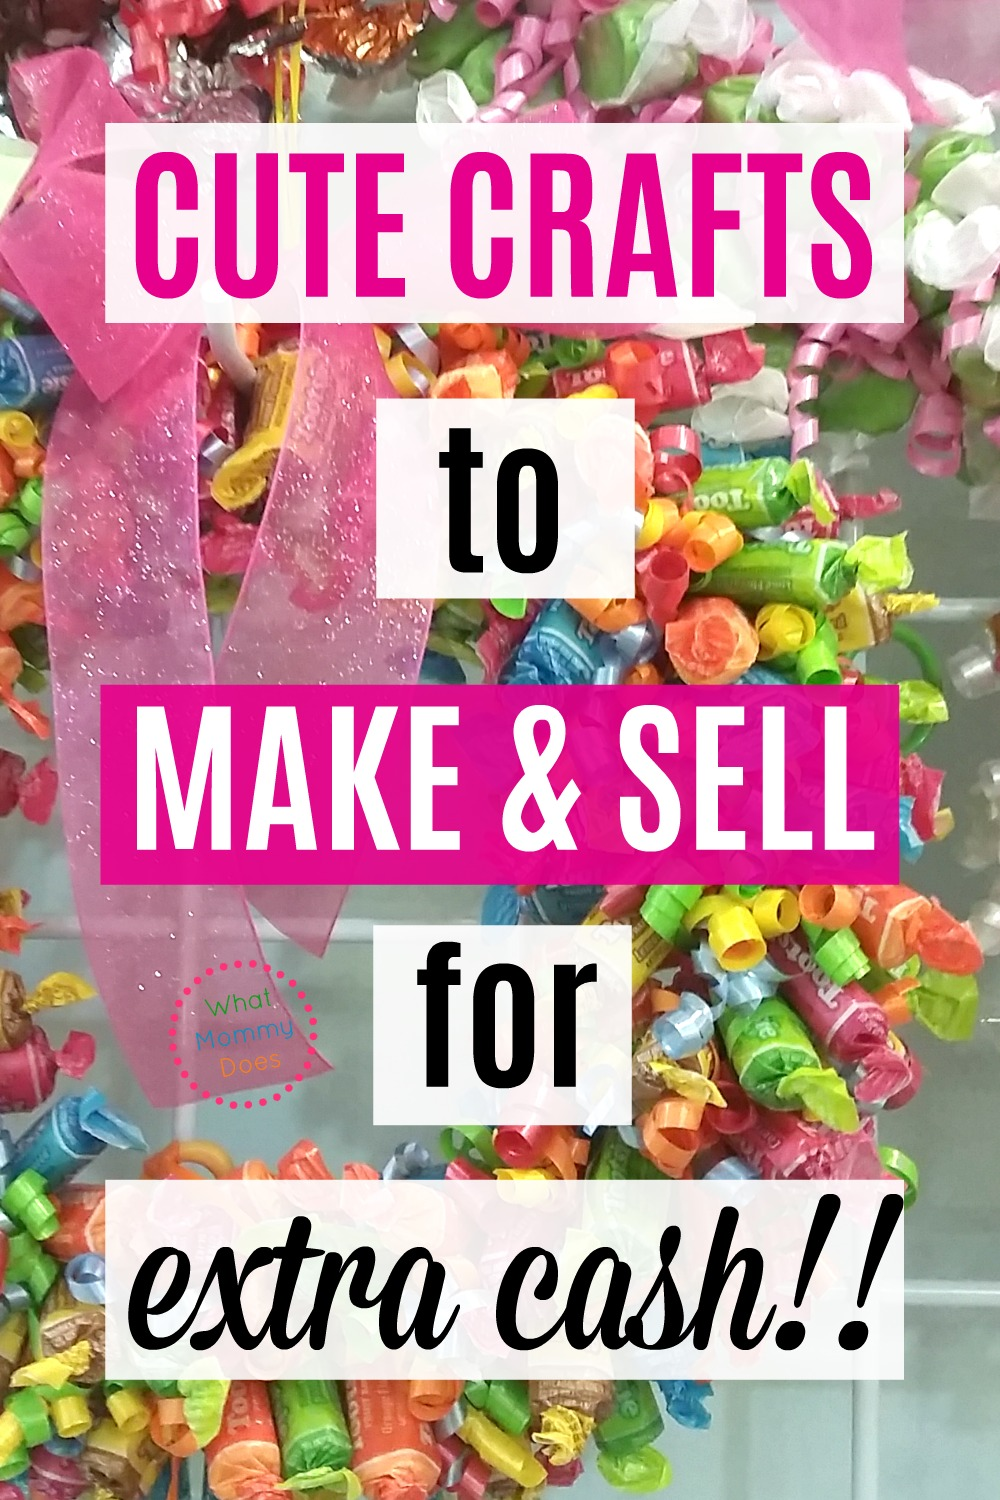 50+ Crafts to Make and Sell at Crafts Fairs and Flea Markets! A great list of things to make and sell…all easy ideas anyone can do, even kids and teens. Part of a series on ways to make extra money from home as a stay-at-home-mom! #money #moneytips #income #extramoney #moneymakingideas #moms #craftideas #makemoneyonline #makemoney #entrepreneur #craftgawker #wreaths #giftideas #gift #crafting #crafterscompanion #DIY #ideas #DIYproject